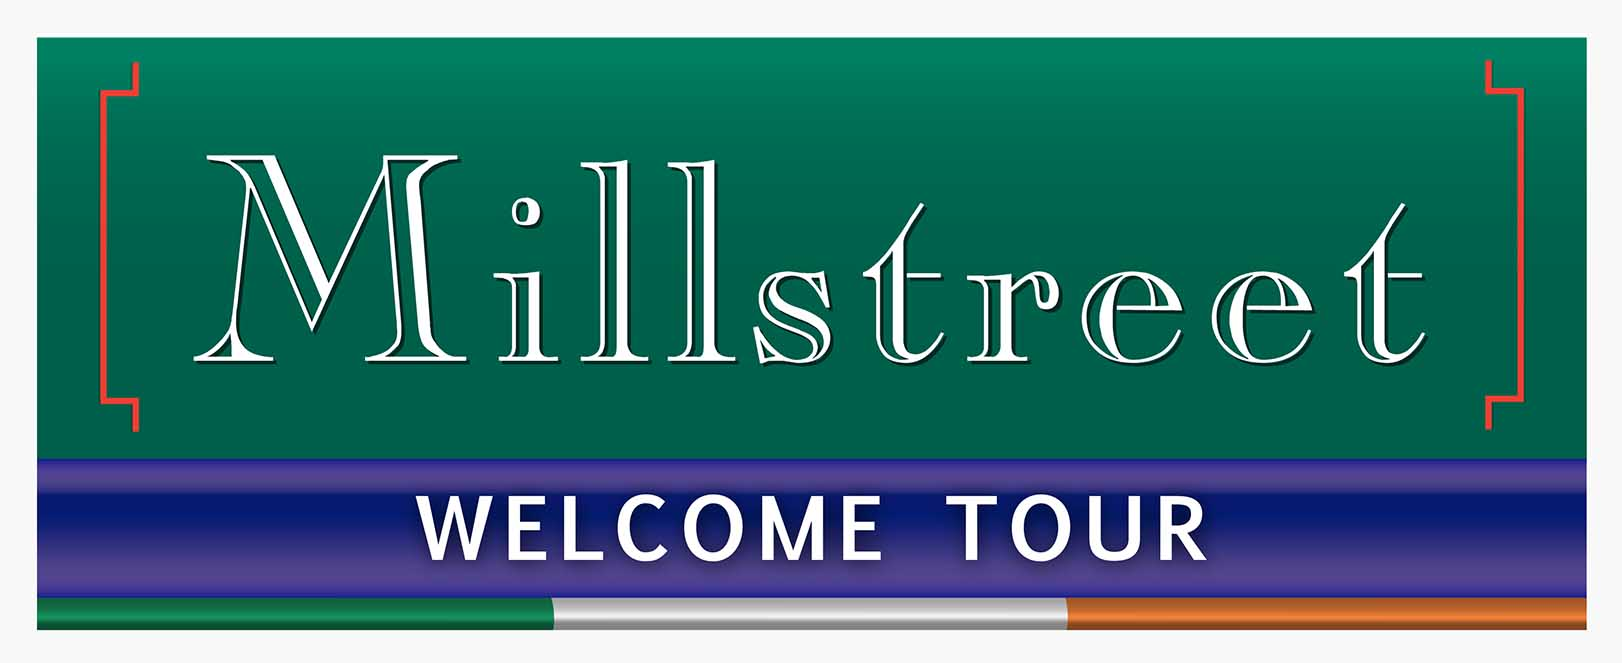 Millstreet_Welcome Tour 2019